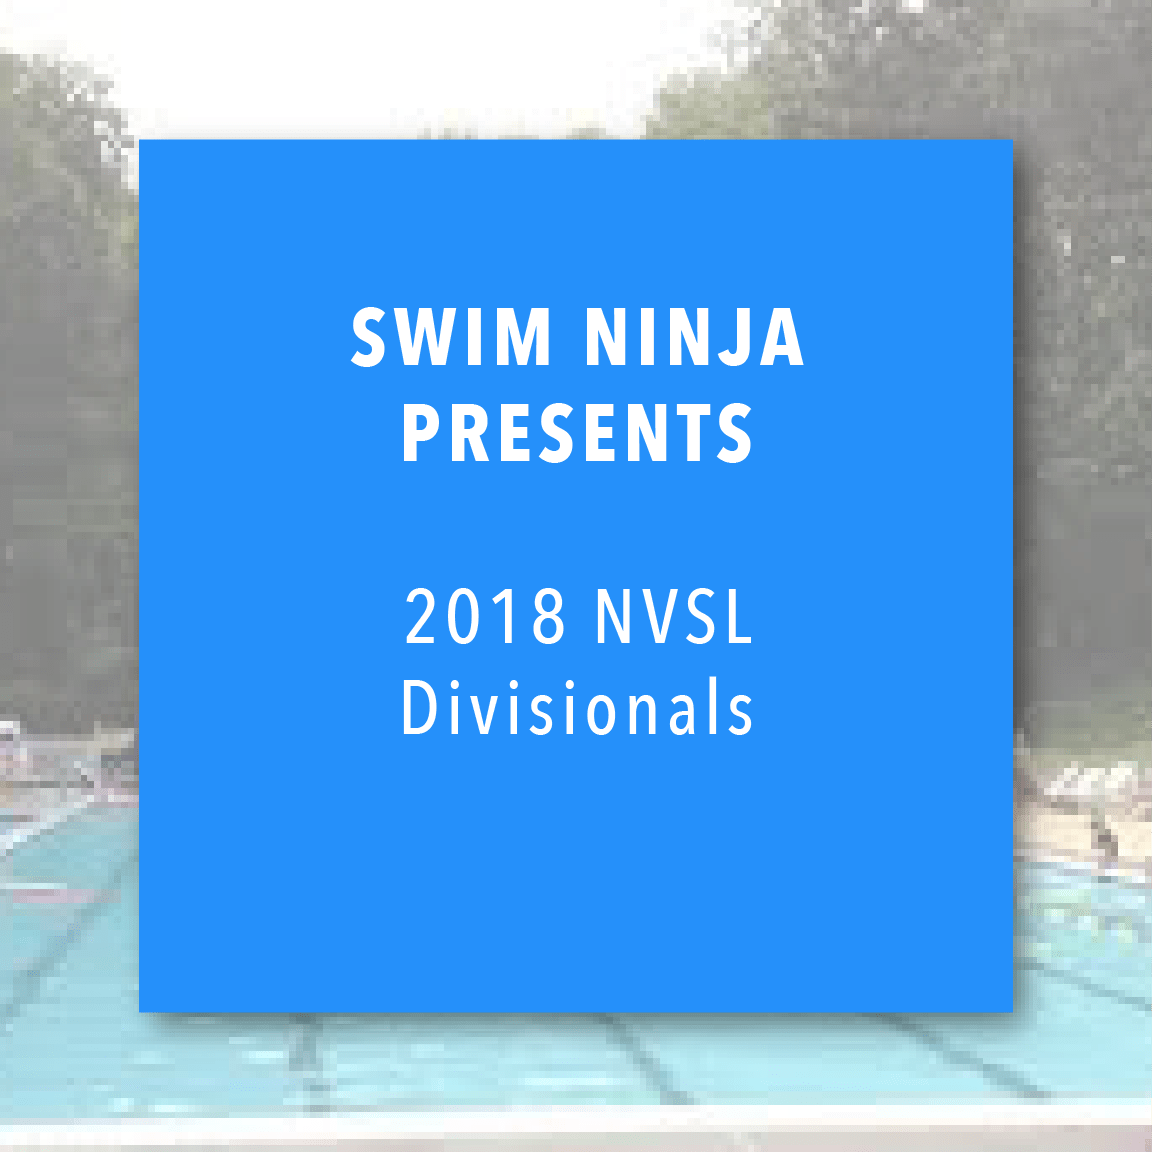 2018 Divisionals: Division 2 Back